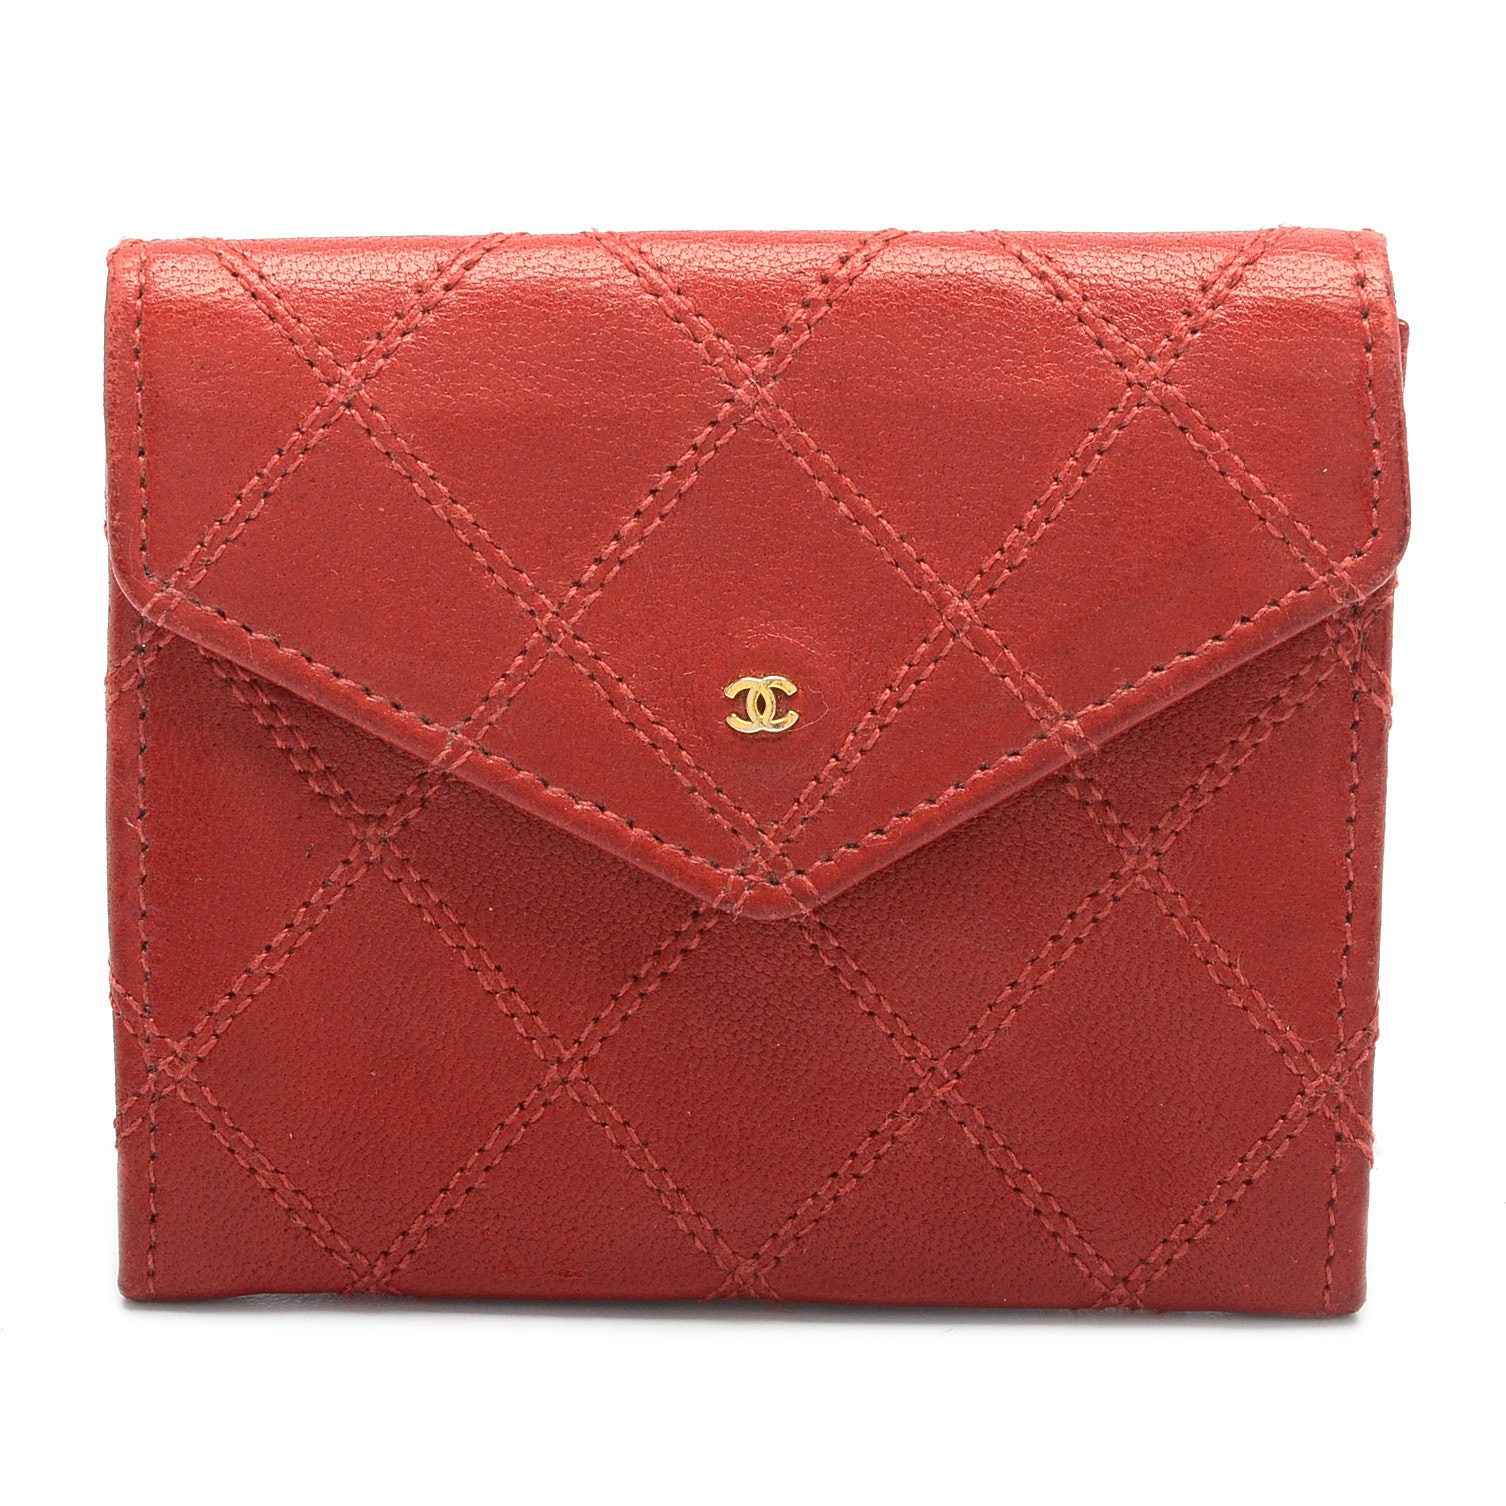 Vintage Chanel Matelasse Envelope Red Leather Wallet